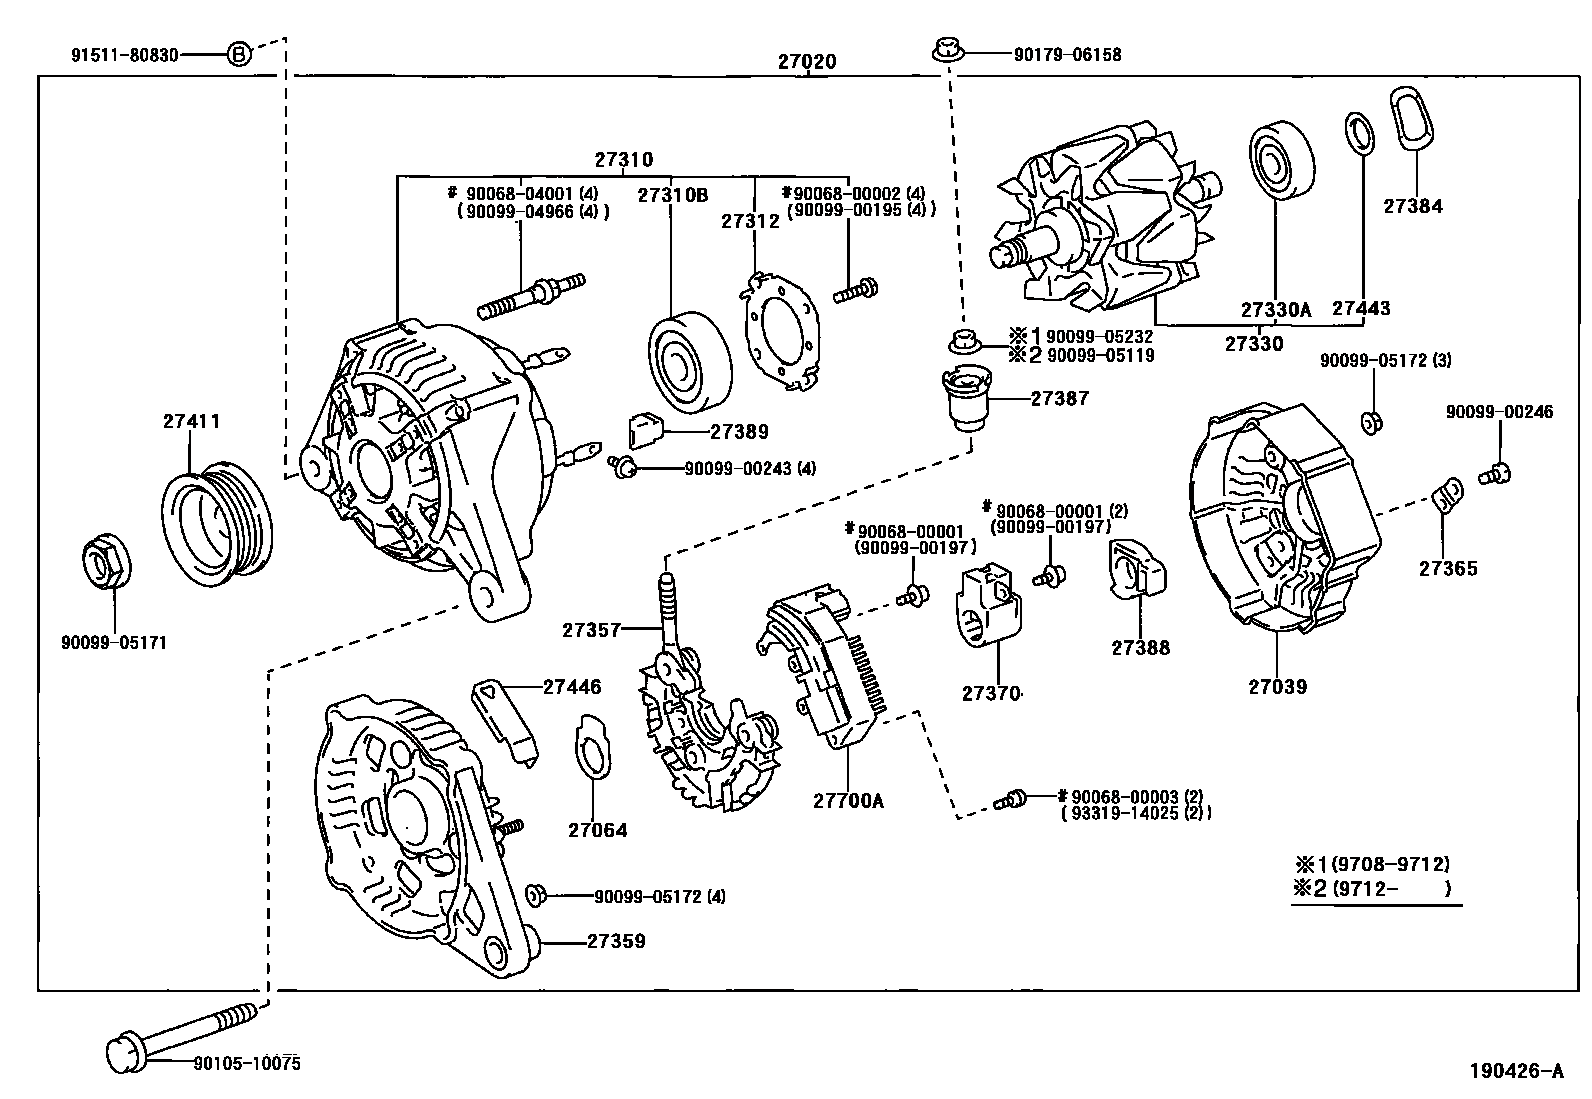 1999 Toyota Corolla VE 1ZZFE Engine Alternator Exploded Diagram